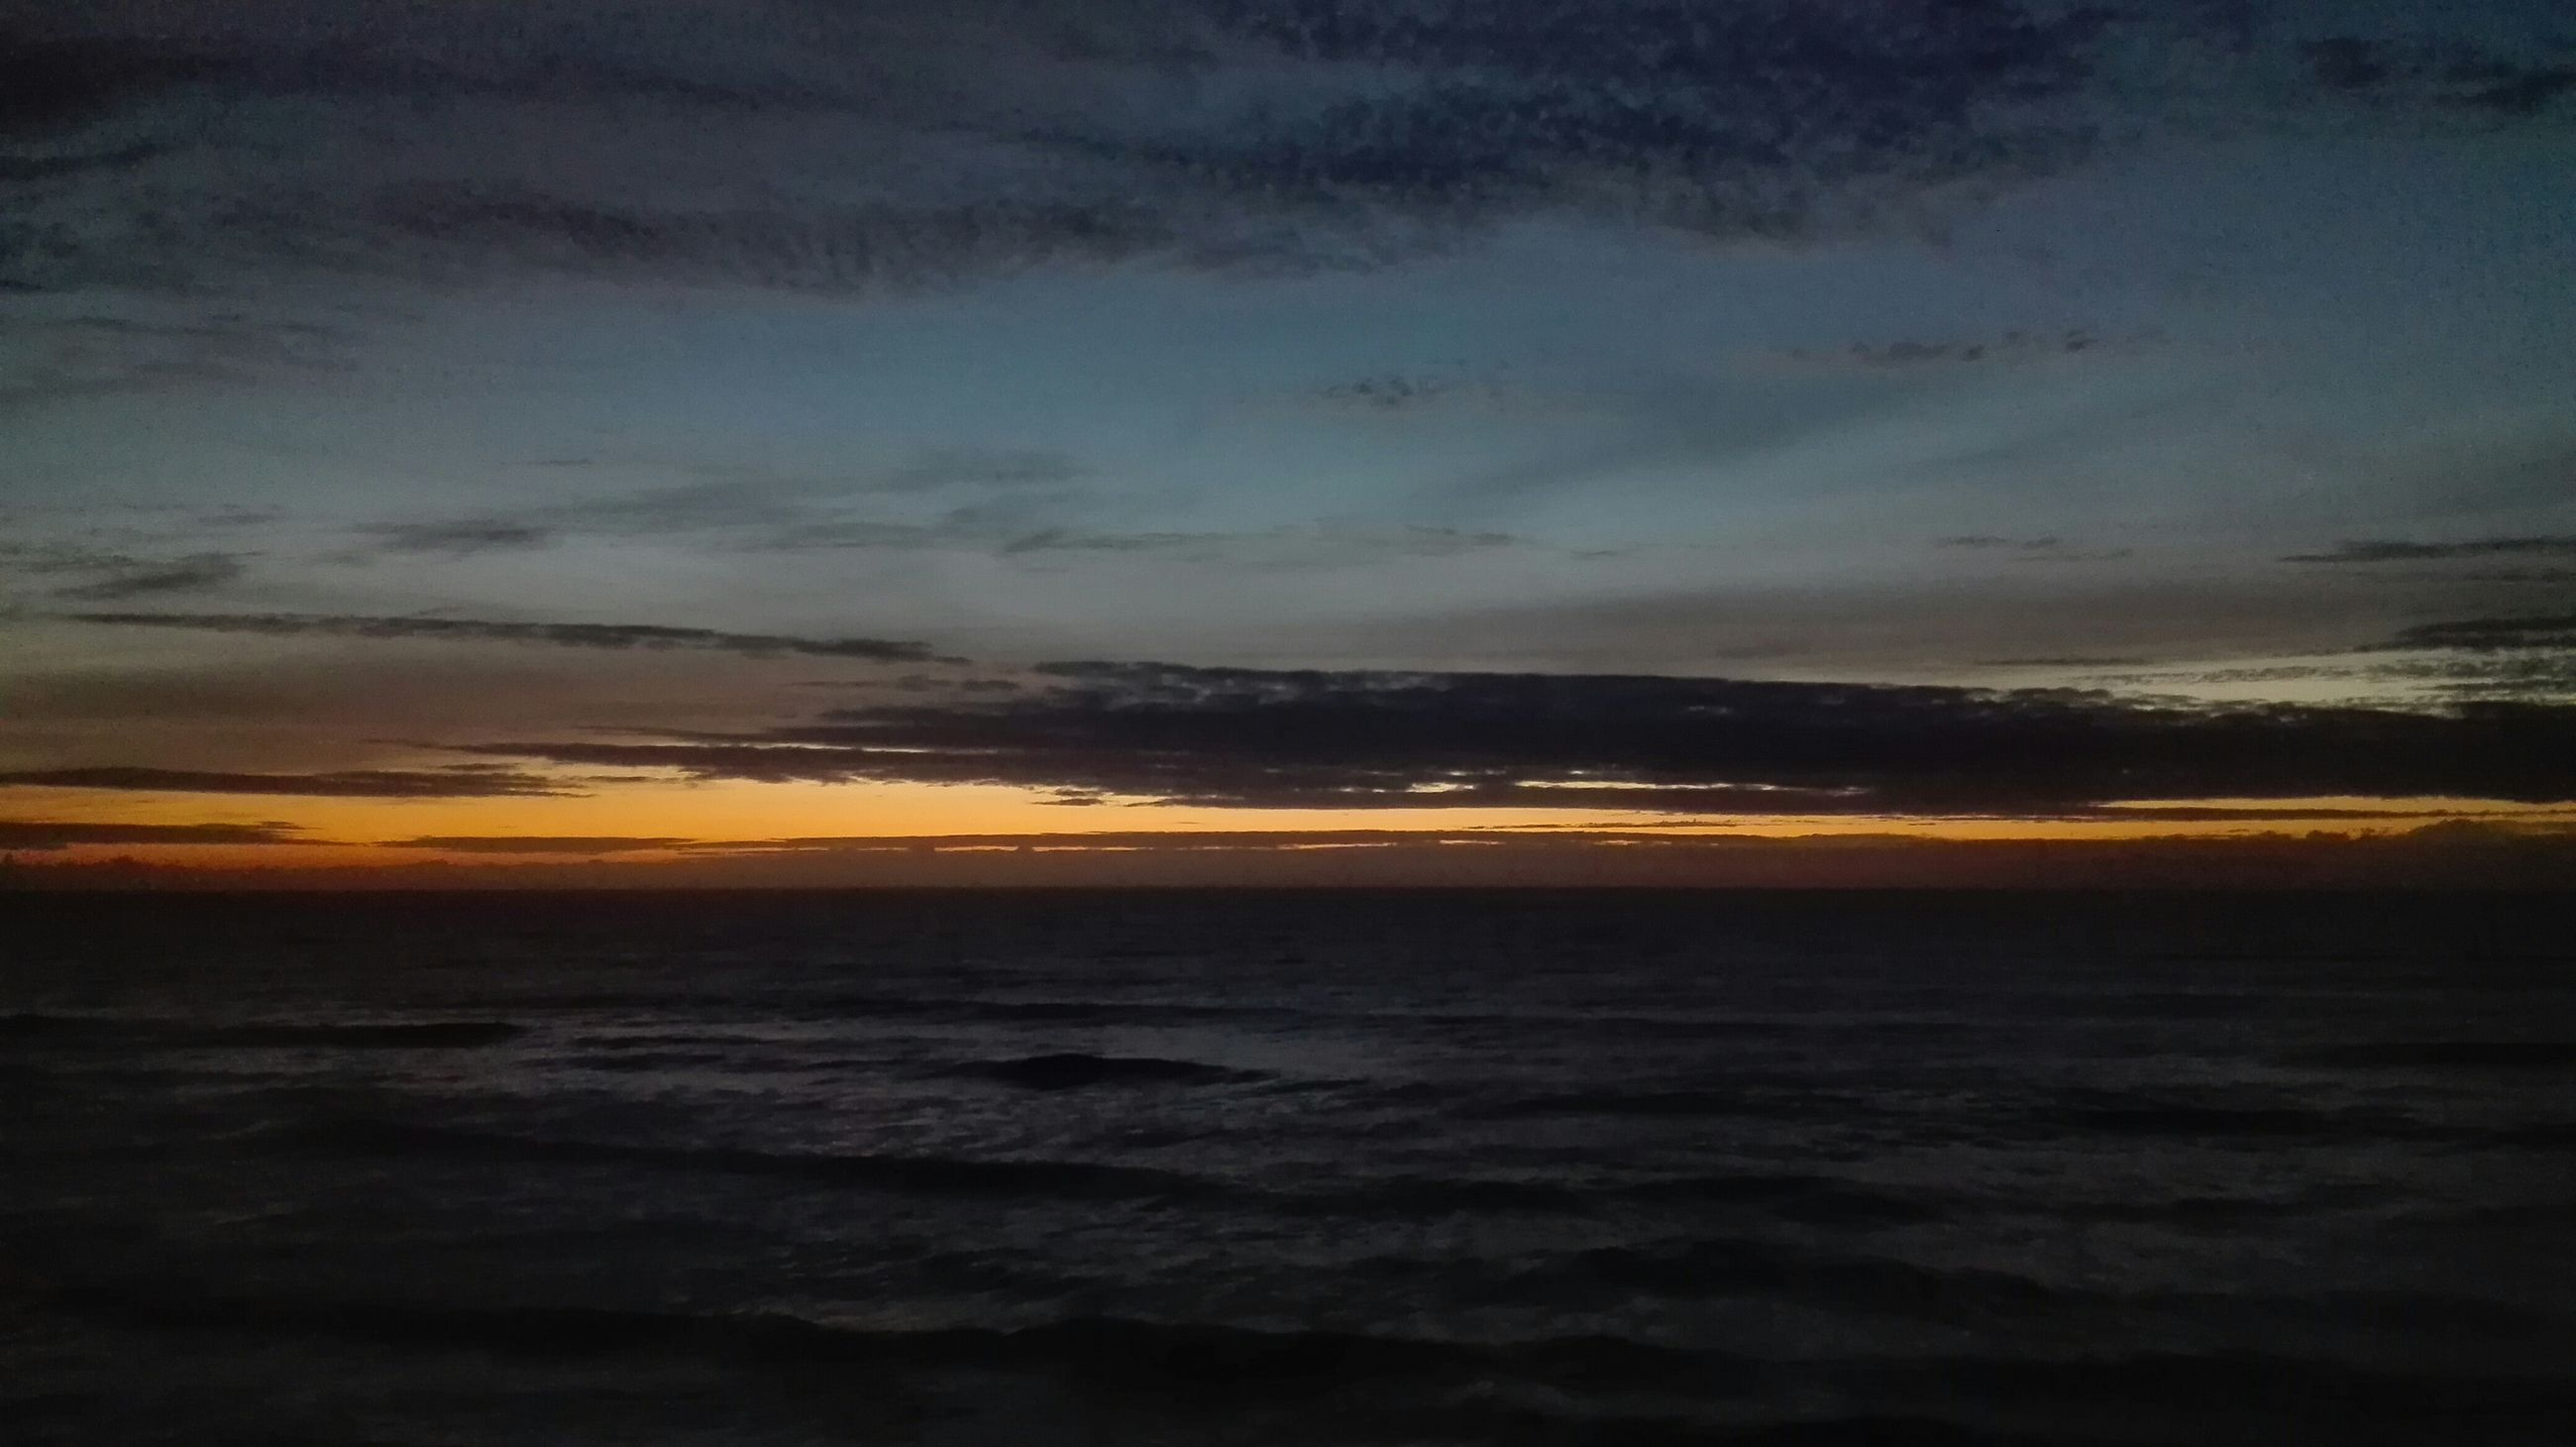 sea, sunset, scenics, tranquil scene, beauty in nature, tranquility, horizon over water, water, sky, nature, idyllic, cloud - sky, beach, orange color, cloud, dusk, shore, dramatic sky, cloudy, seascape